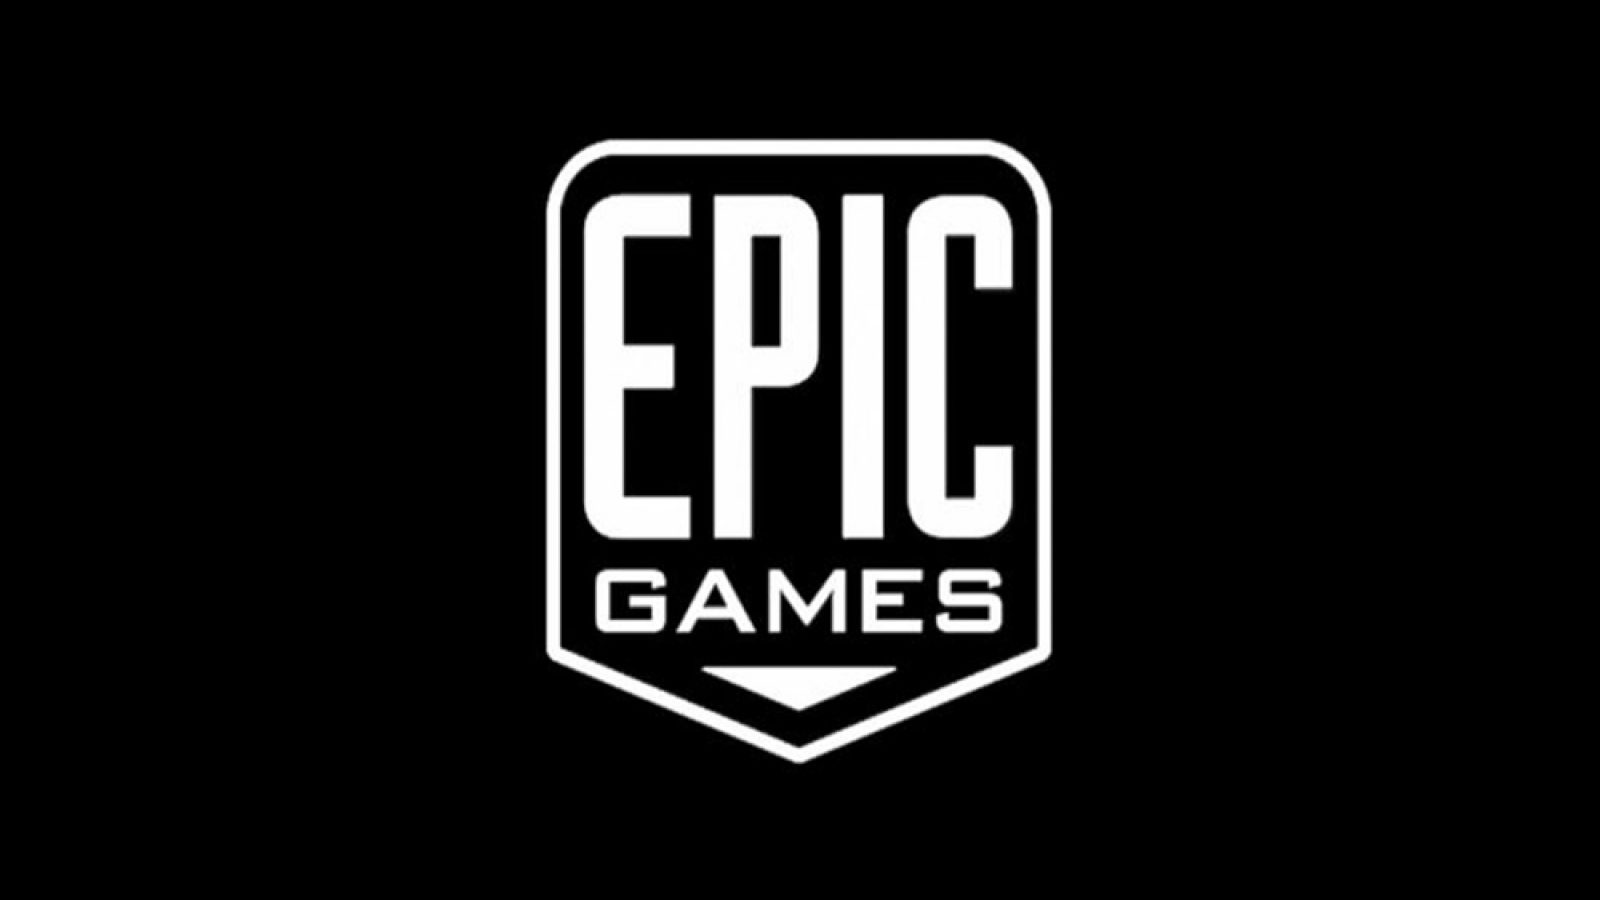 Epic employees reportedly work insane hours to keep Fortnite on top - FortniteINTEL